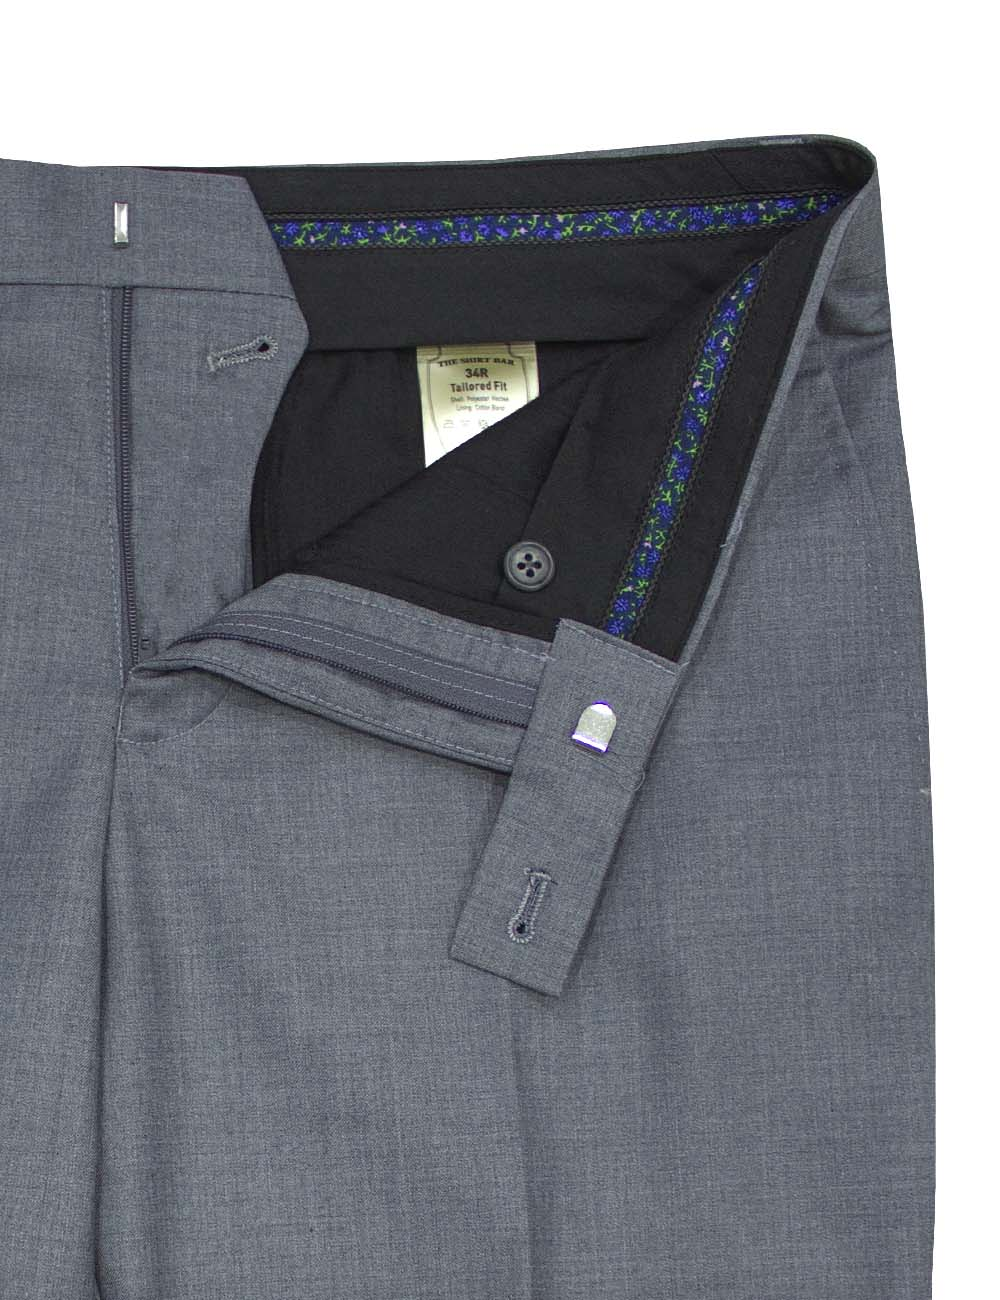 Slim / Tailored Fit Grey Twill Suit Set – SS3.3